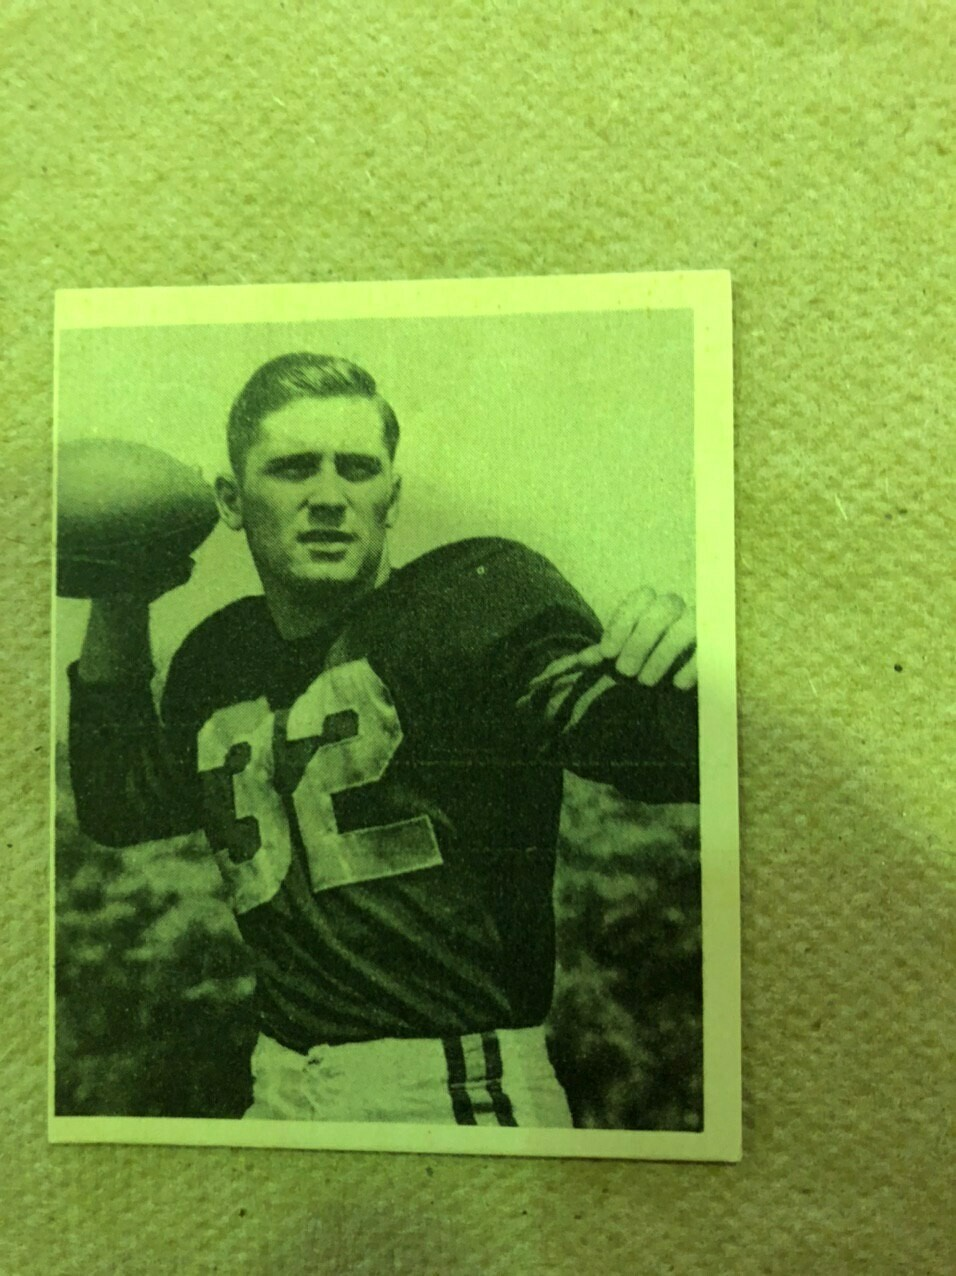 1948 Bowman #3 Johnny Lujack rookie, List #350, Sell $195